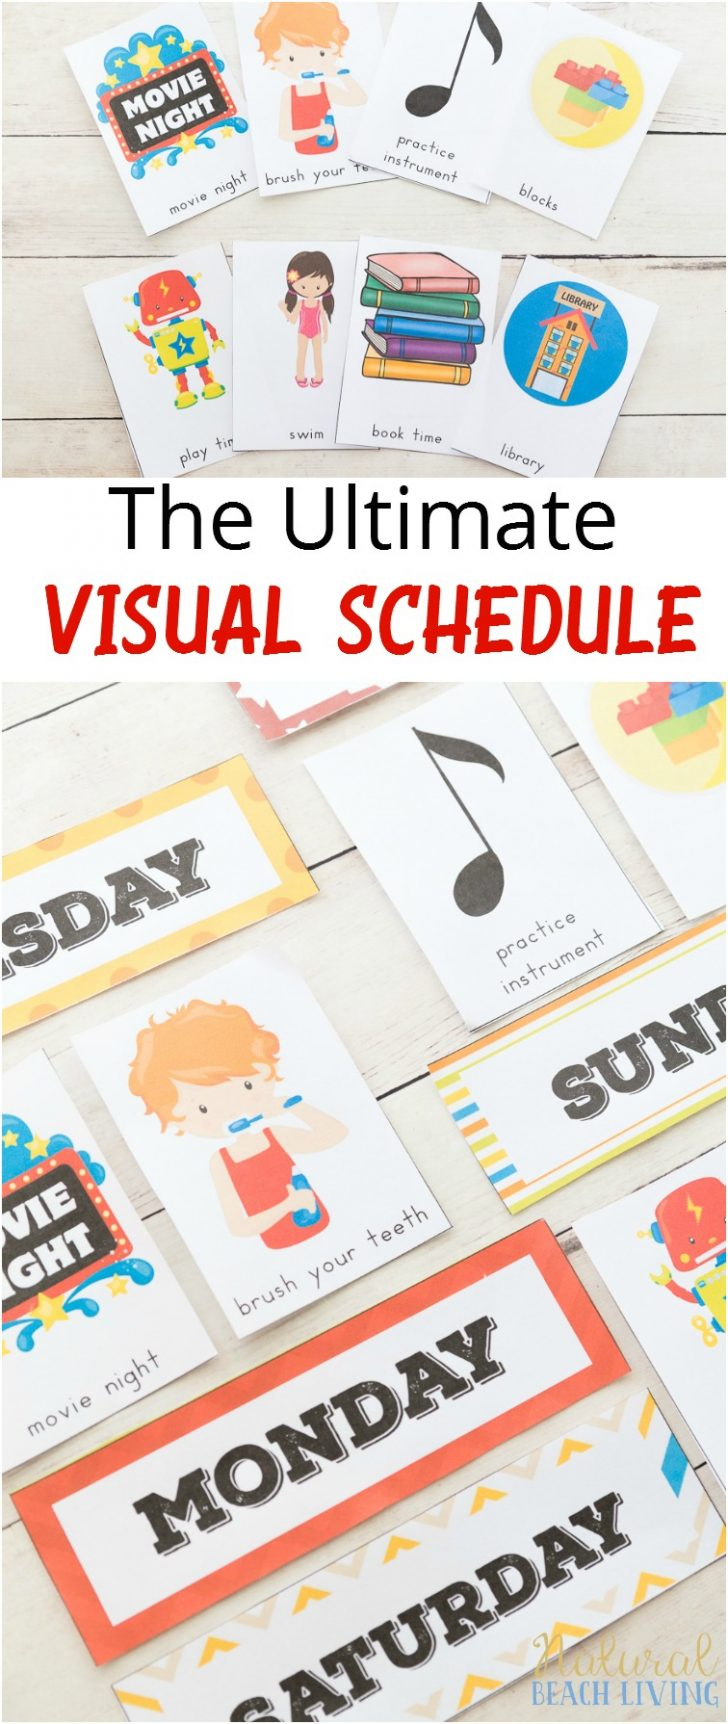 Free Printable Daily Routine Picture Cards